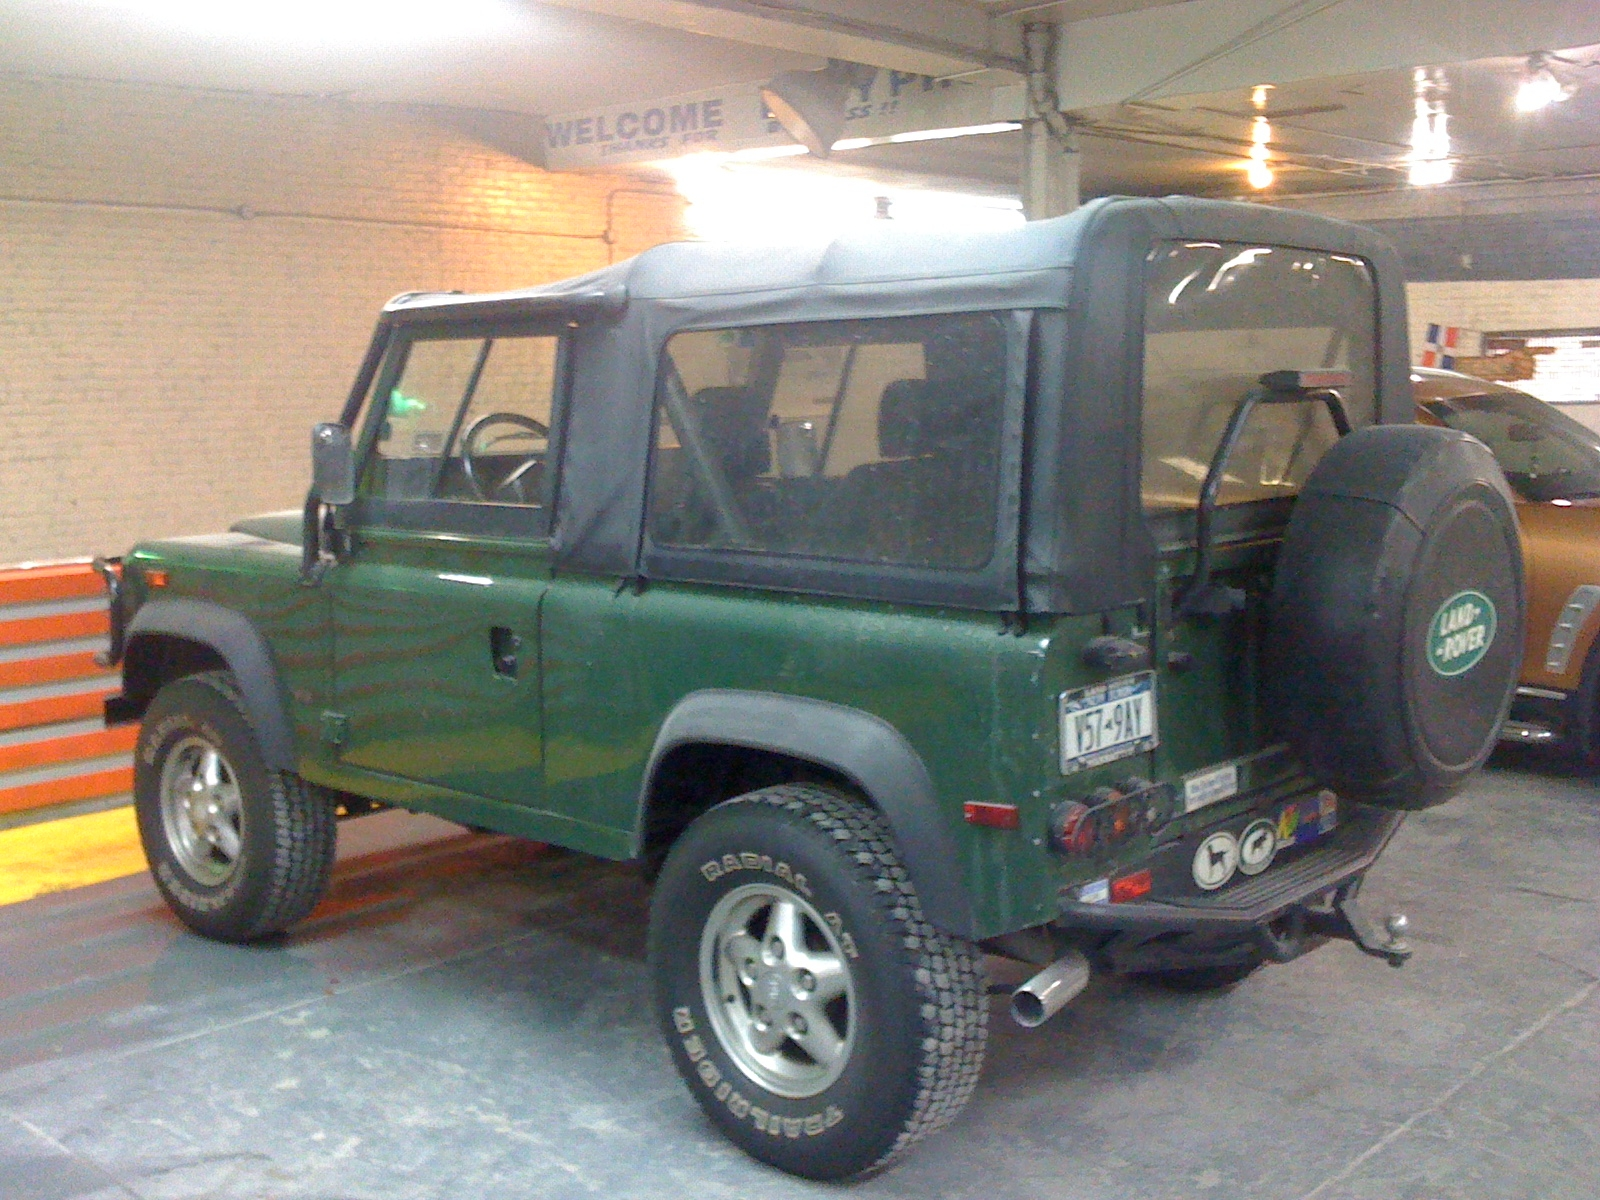 Keds4u 1995 Land Rover Defender 90 Specs s Modification